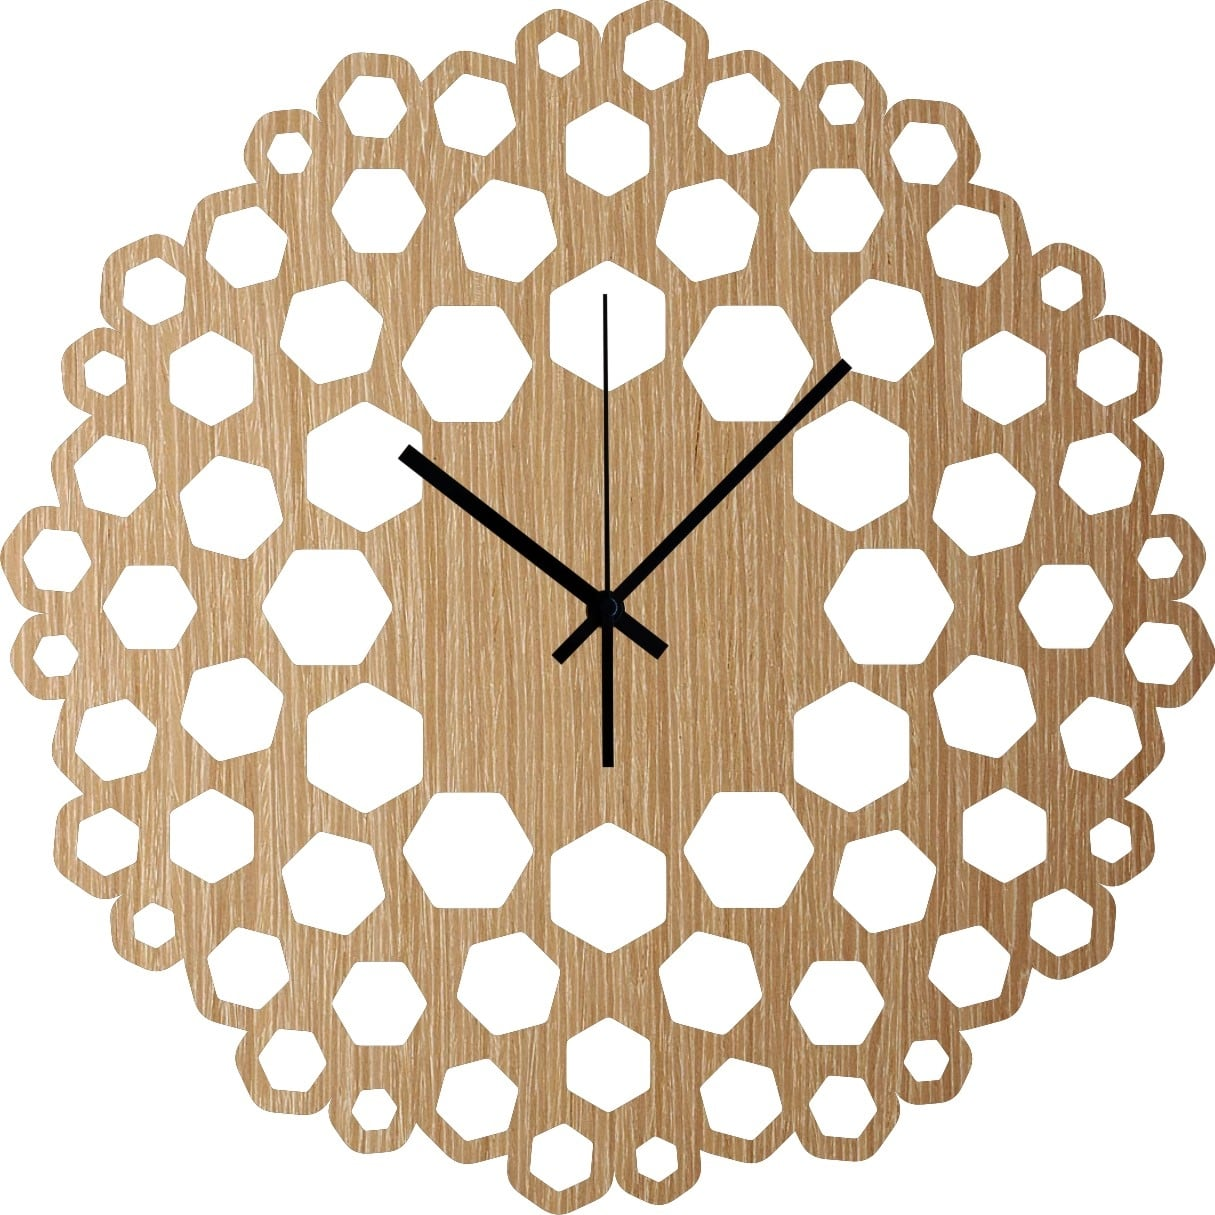 Scala modern wood wall clock for a trendy kitchen